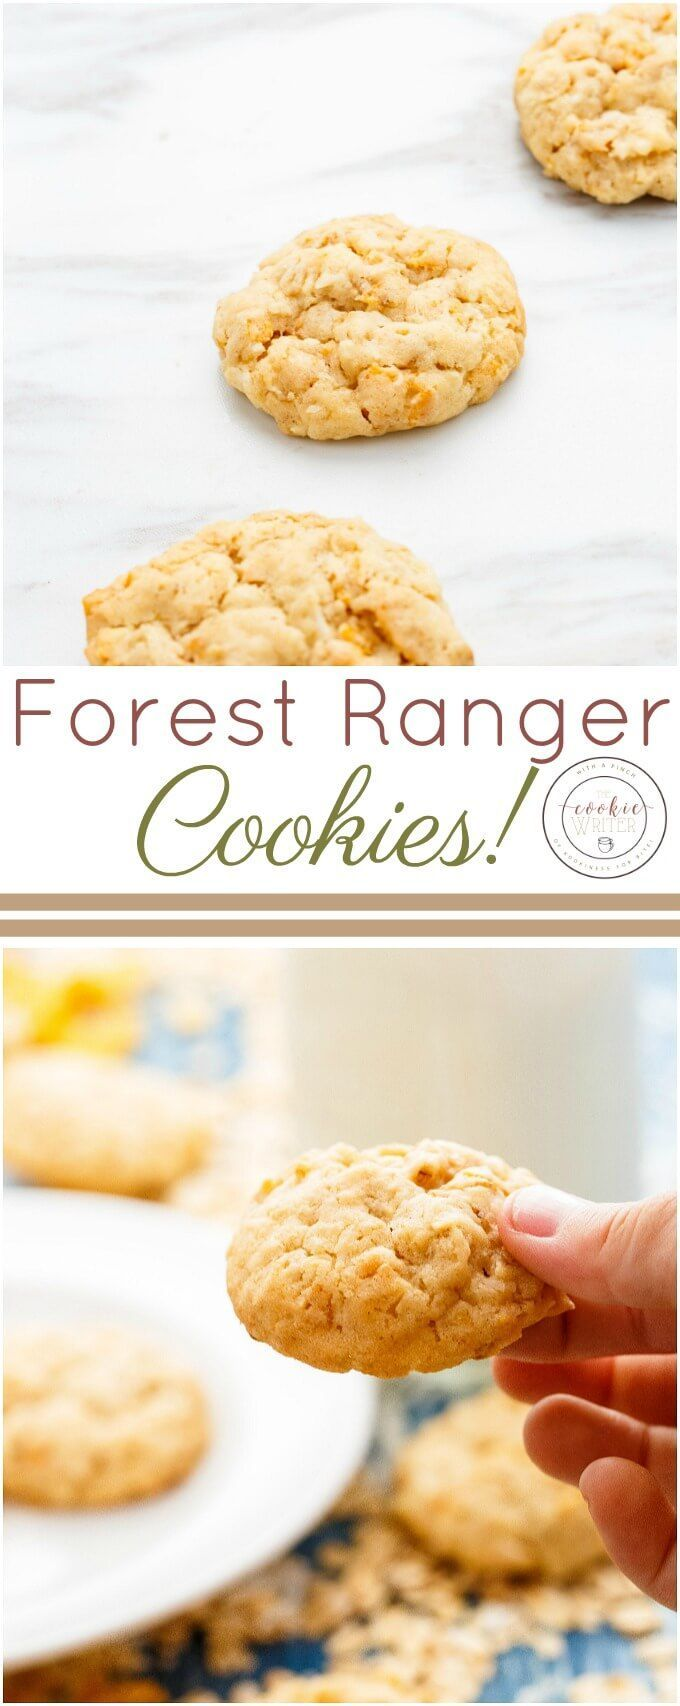 Forest Ranger Cookies | http://thecookiewriter.com | @thecookiewriter | #cookies | Forest ranger cookies are made with a blend of oats, coconut, and Corn Flakes! Their unique texture is one of softness, but chewiness!